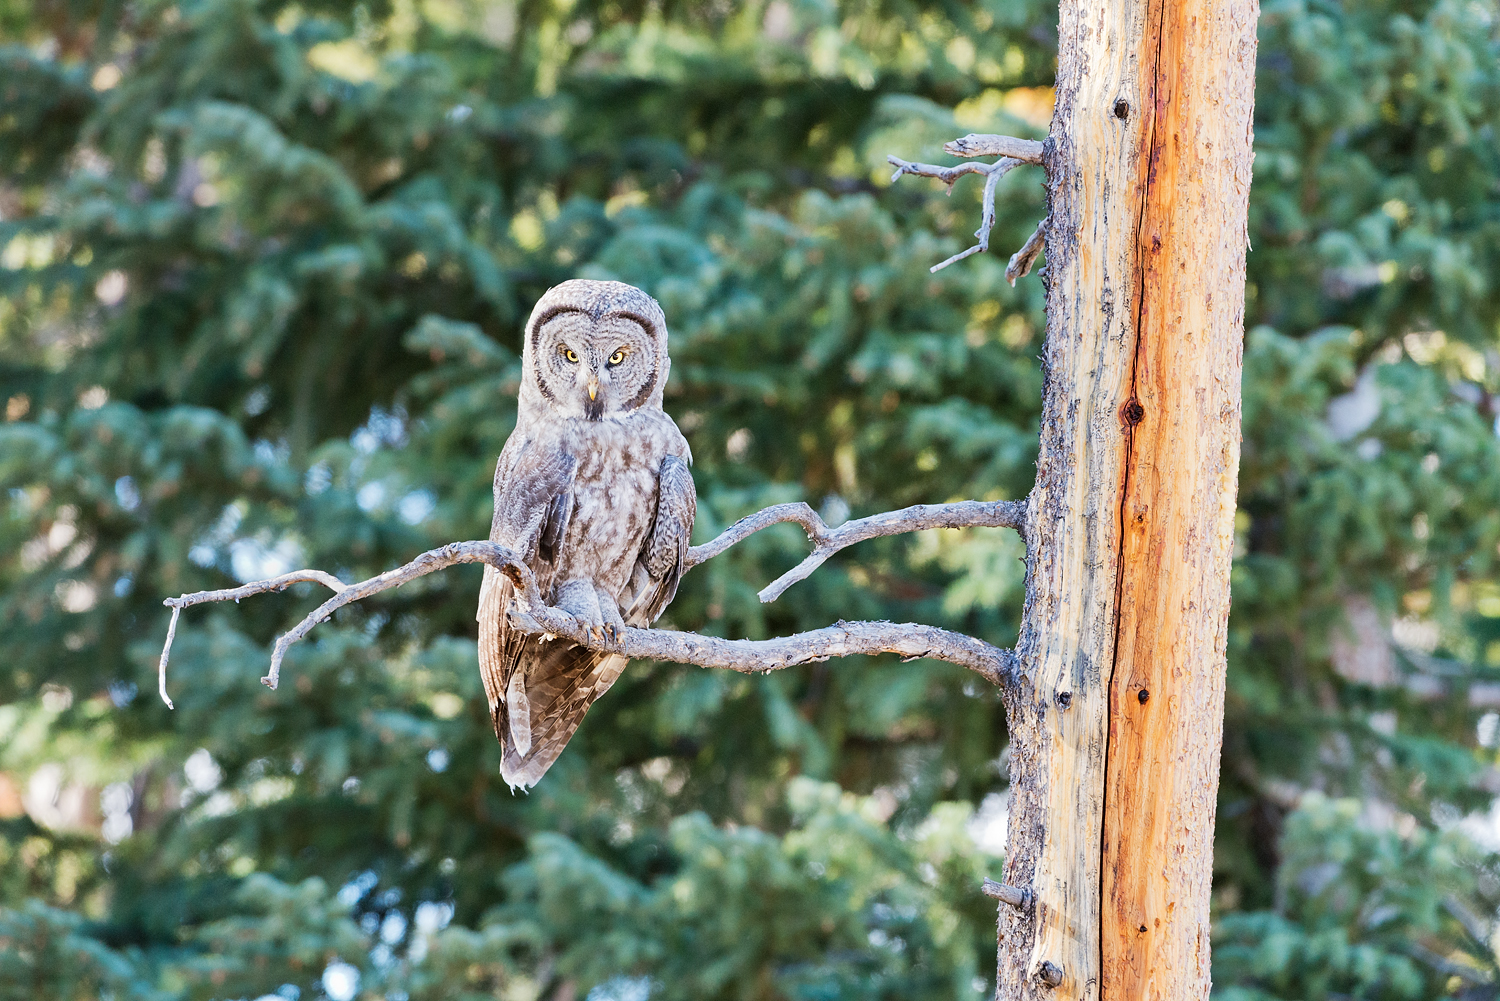 Great Grey Owl in Snag, Yellowstone National Park, Wyoming